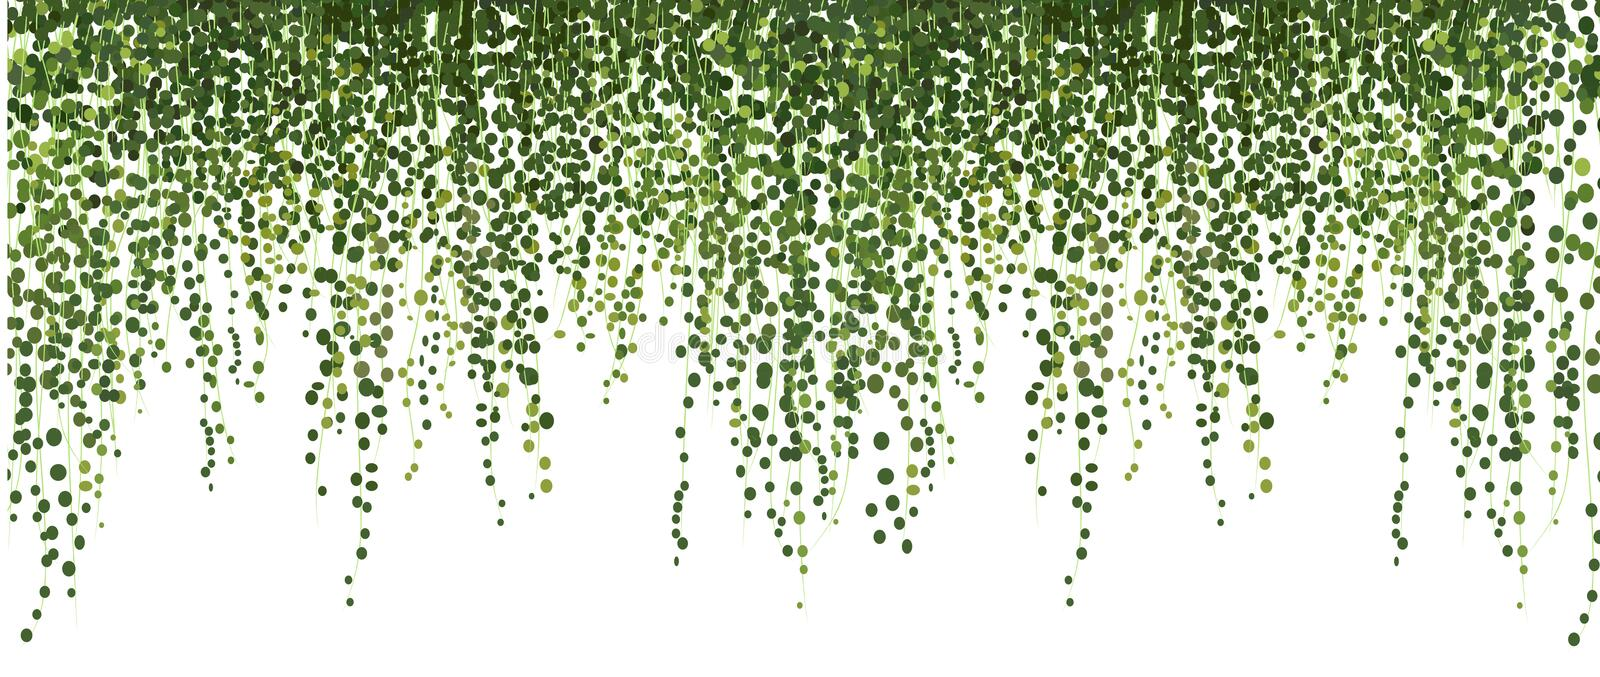 Climbing wall of ivy. vector illustration on white background. banner and web background. stock illustration